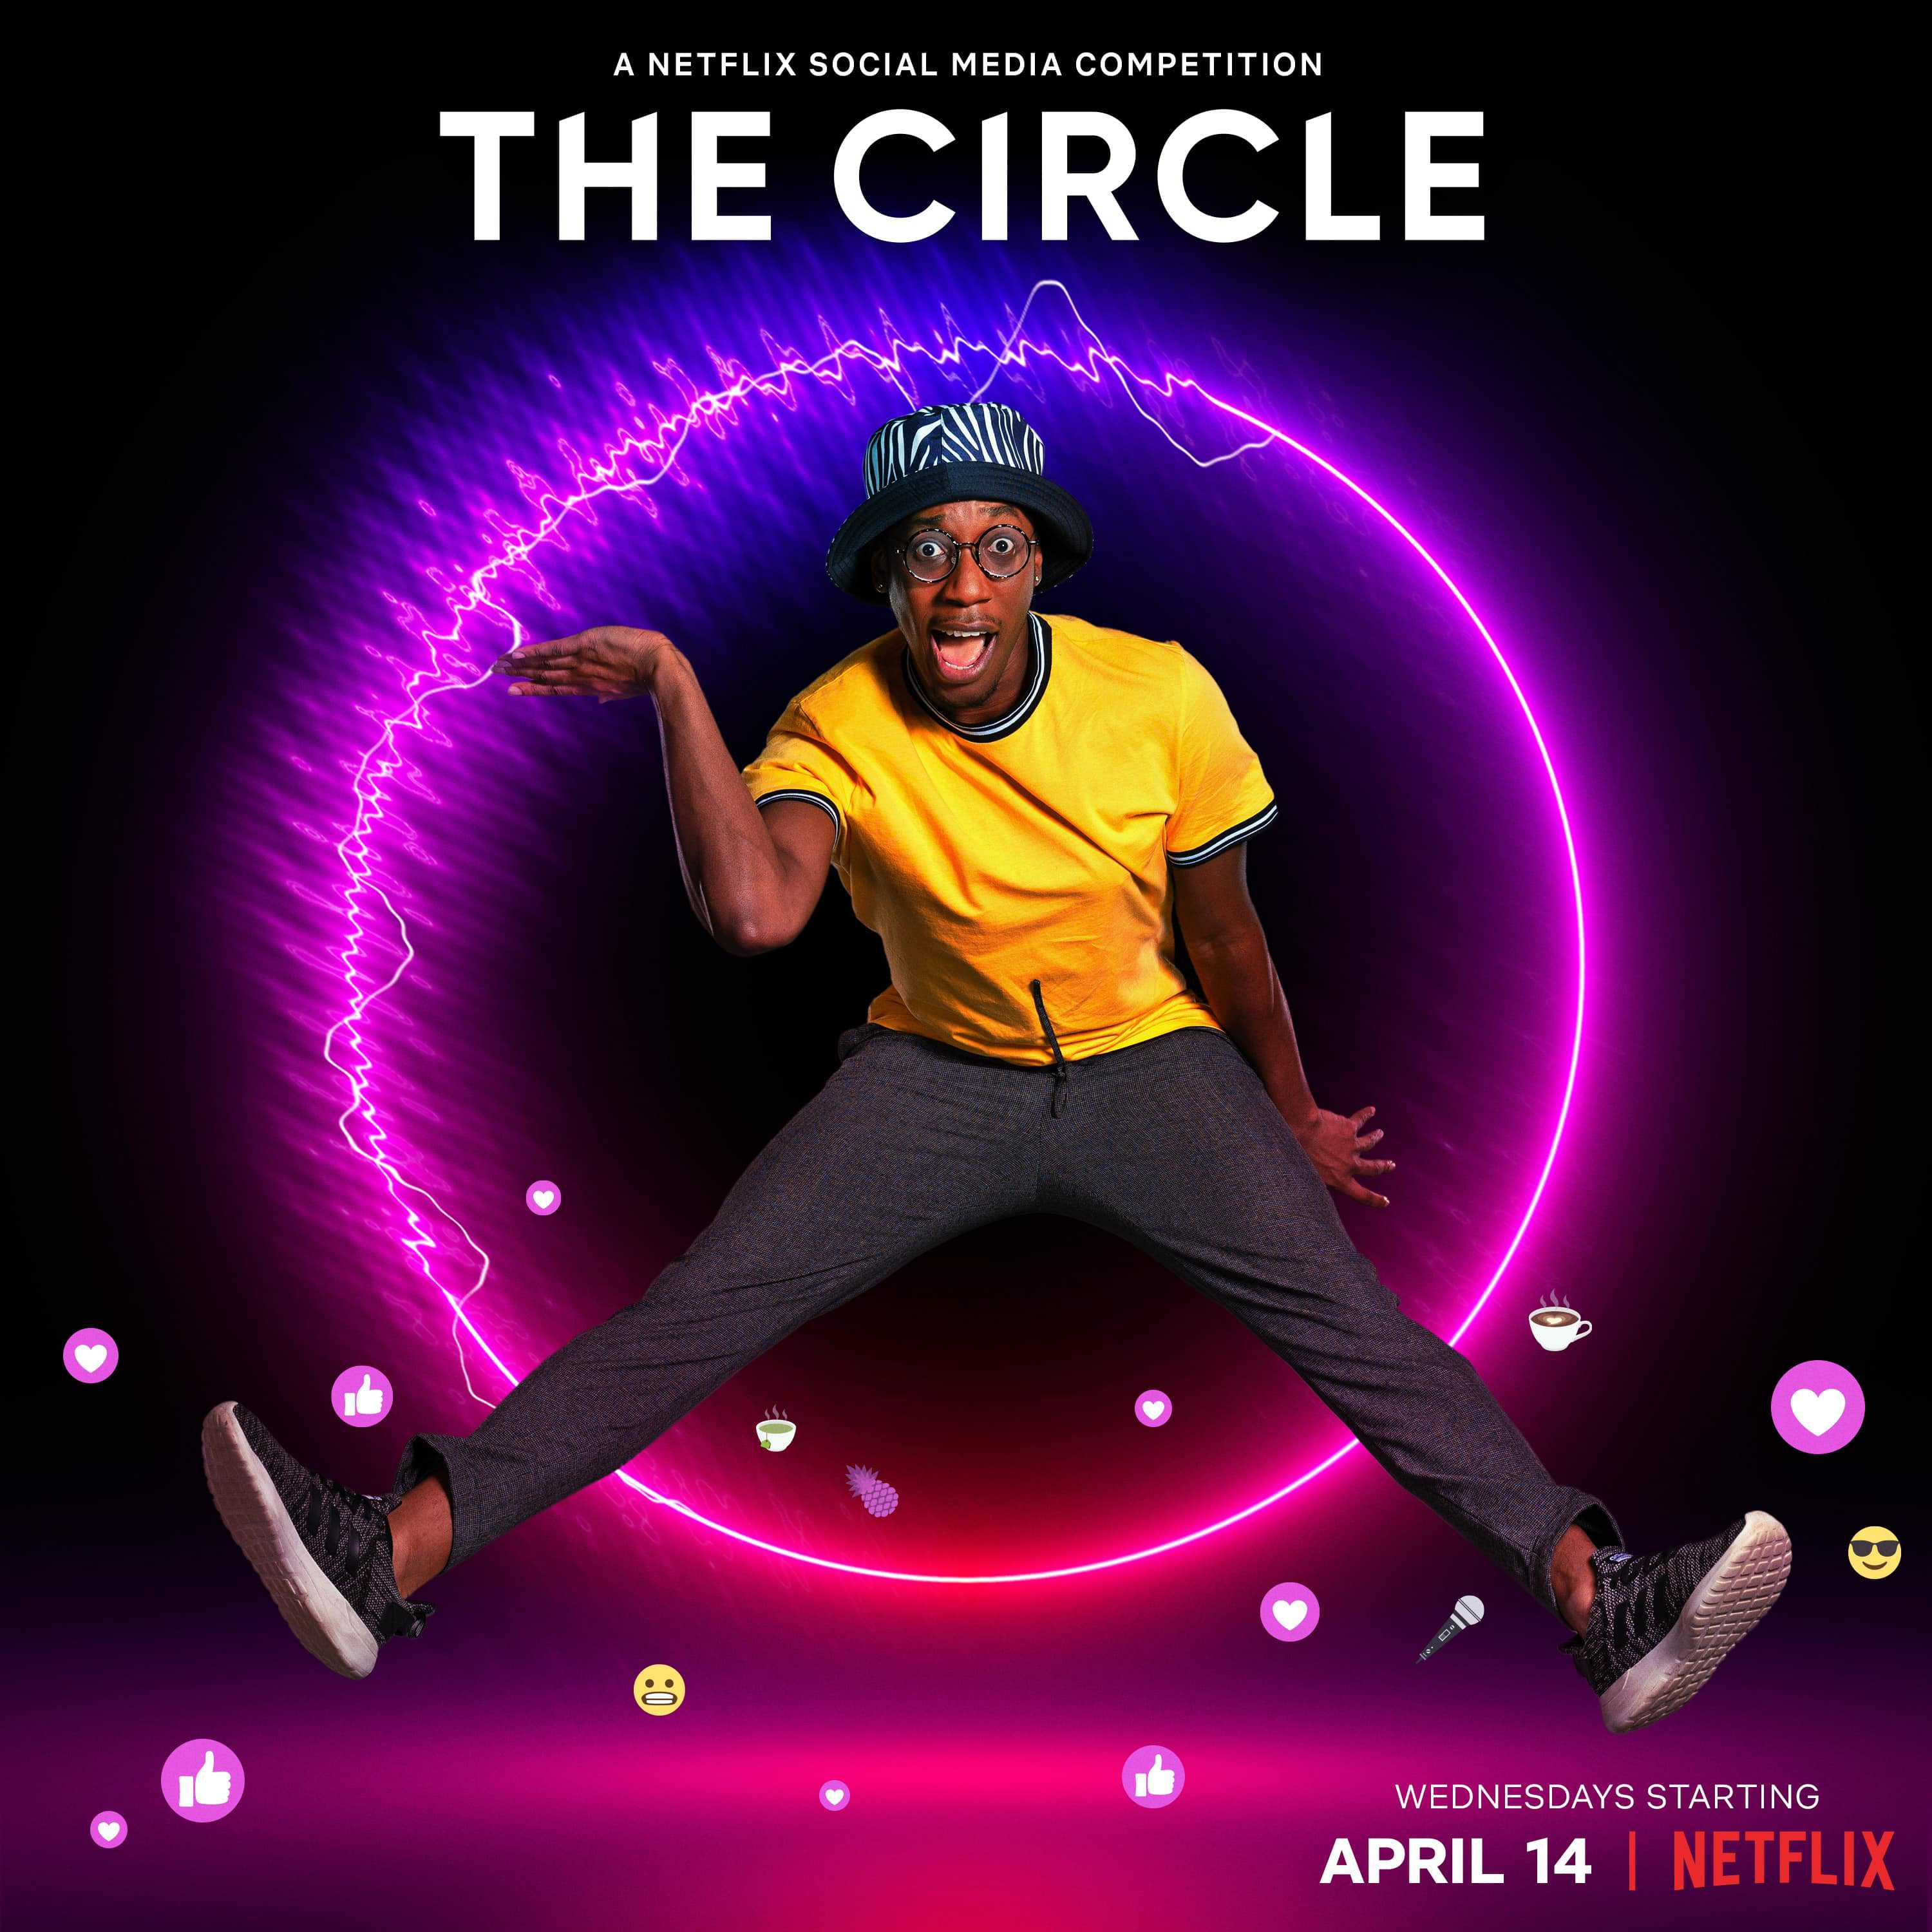 Courtney in promotional material for The Circle Season 2